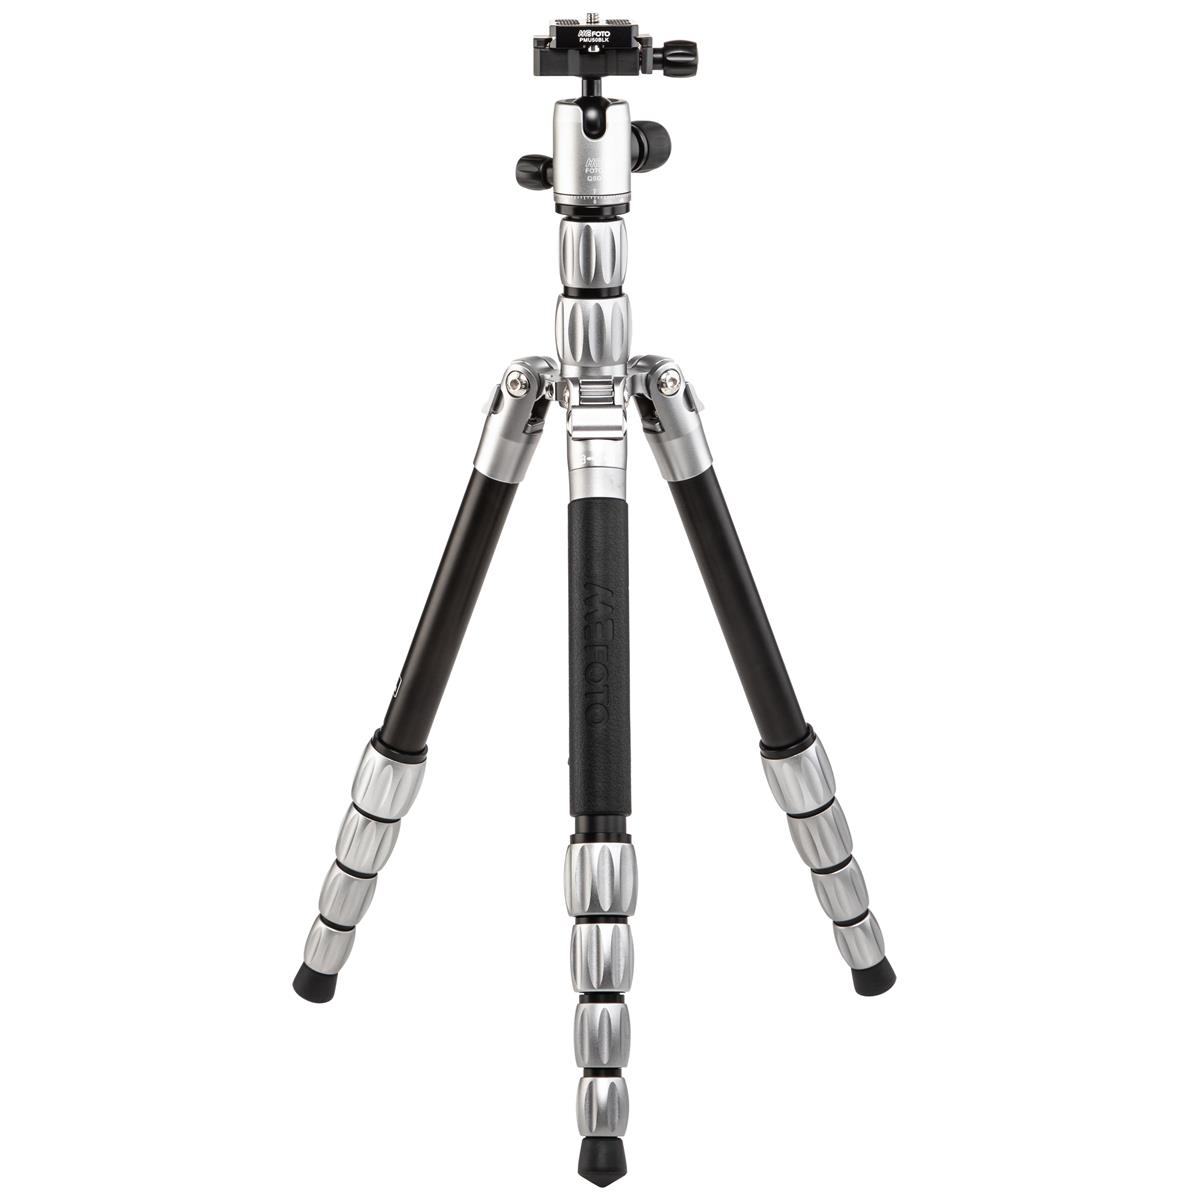 MeFOTO BackPacker S Travel Tripod  Titanium, Aluminum)